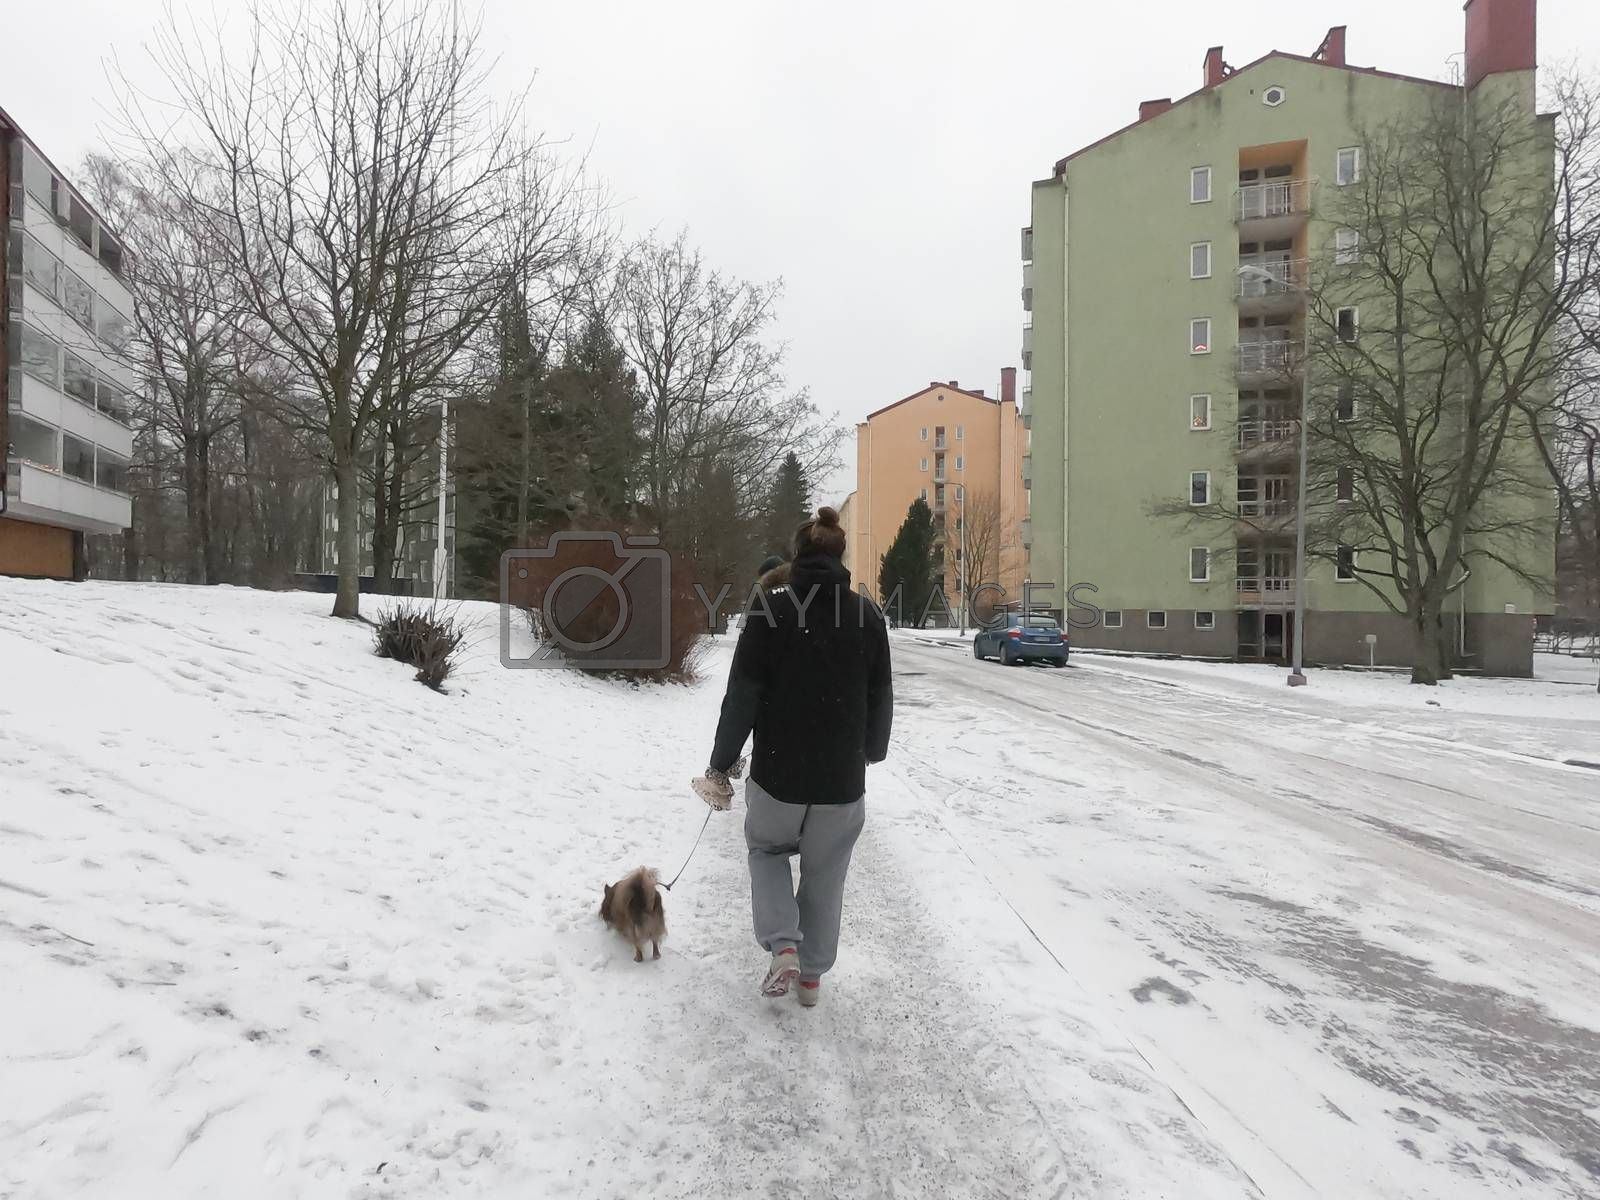 A man has walking with a pet dog on a leash at a nature park during covid-19 pandemic social distancing isolation in Helsinki, Finland